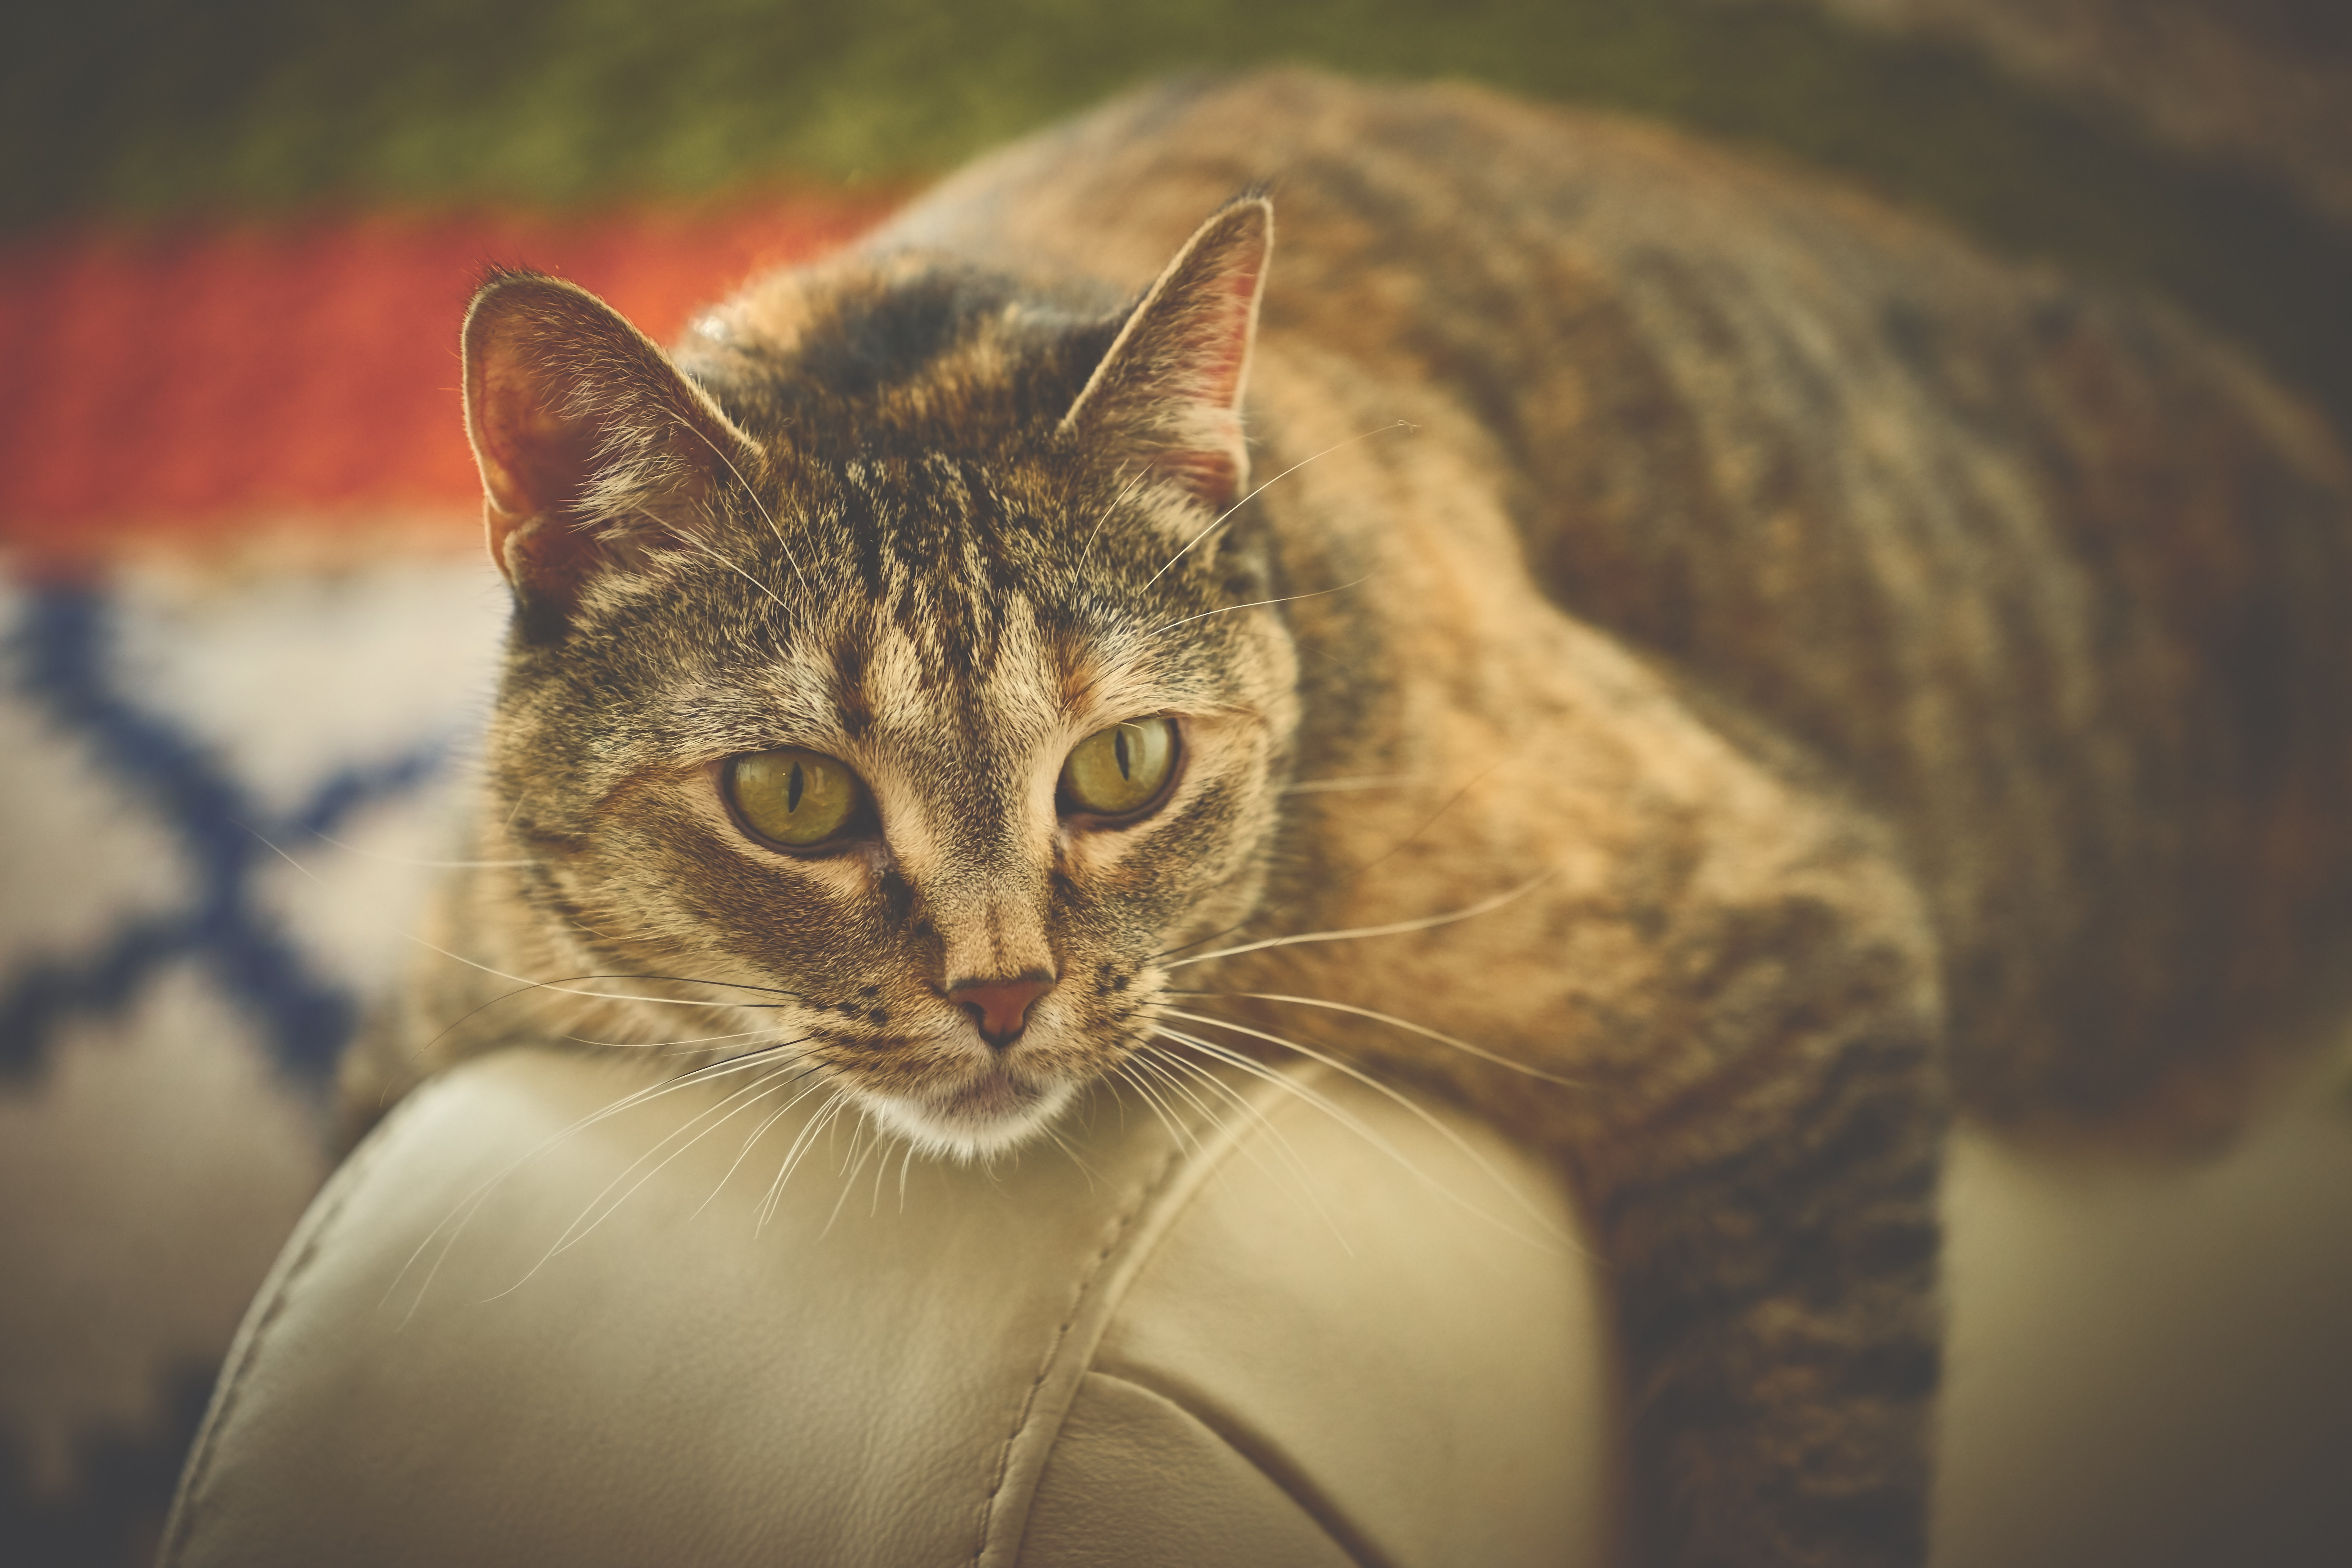 Brown cat on beige leather surface photo